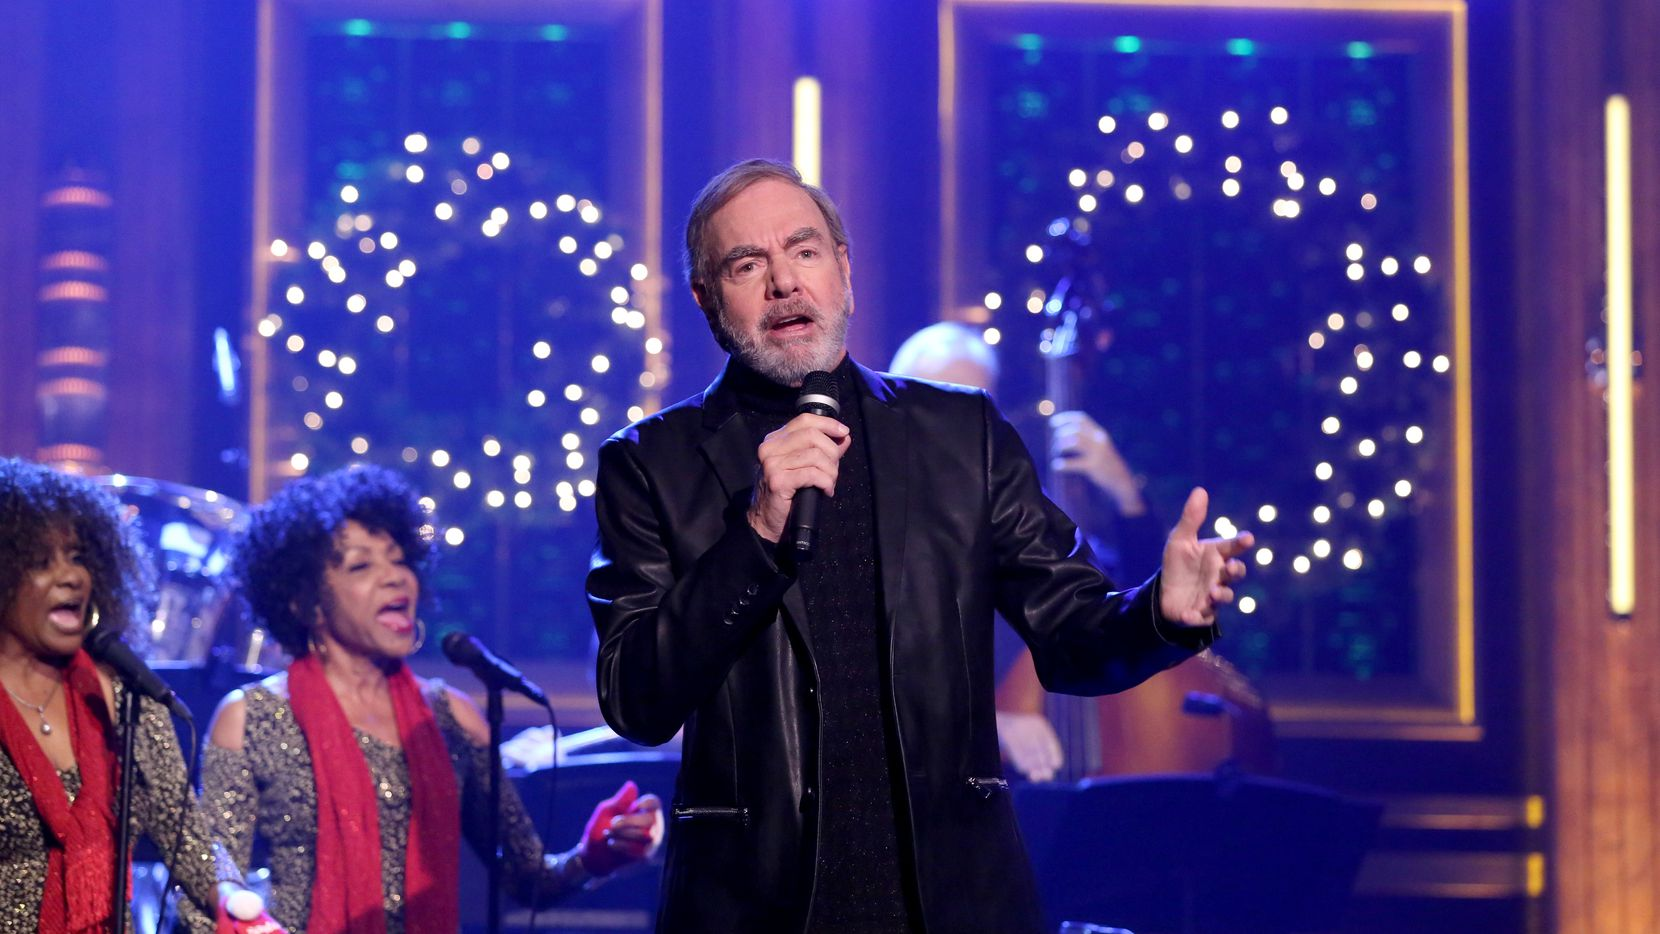 """Neil Diamond performed on """"The Tonight Show"""" on Nov. 29, 2016, after performing a medley of Christmas songs from his new holiday album on NBC's """"Christmas at Rockefeller Center"""" -- (Photo by: Andrew Lipovsky/NBC)"""